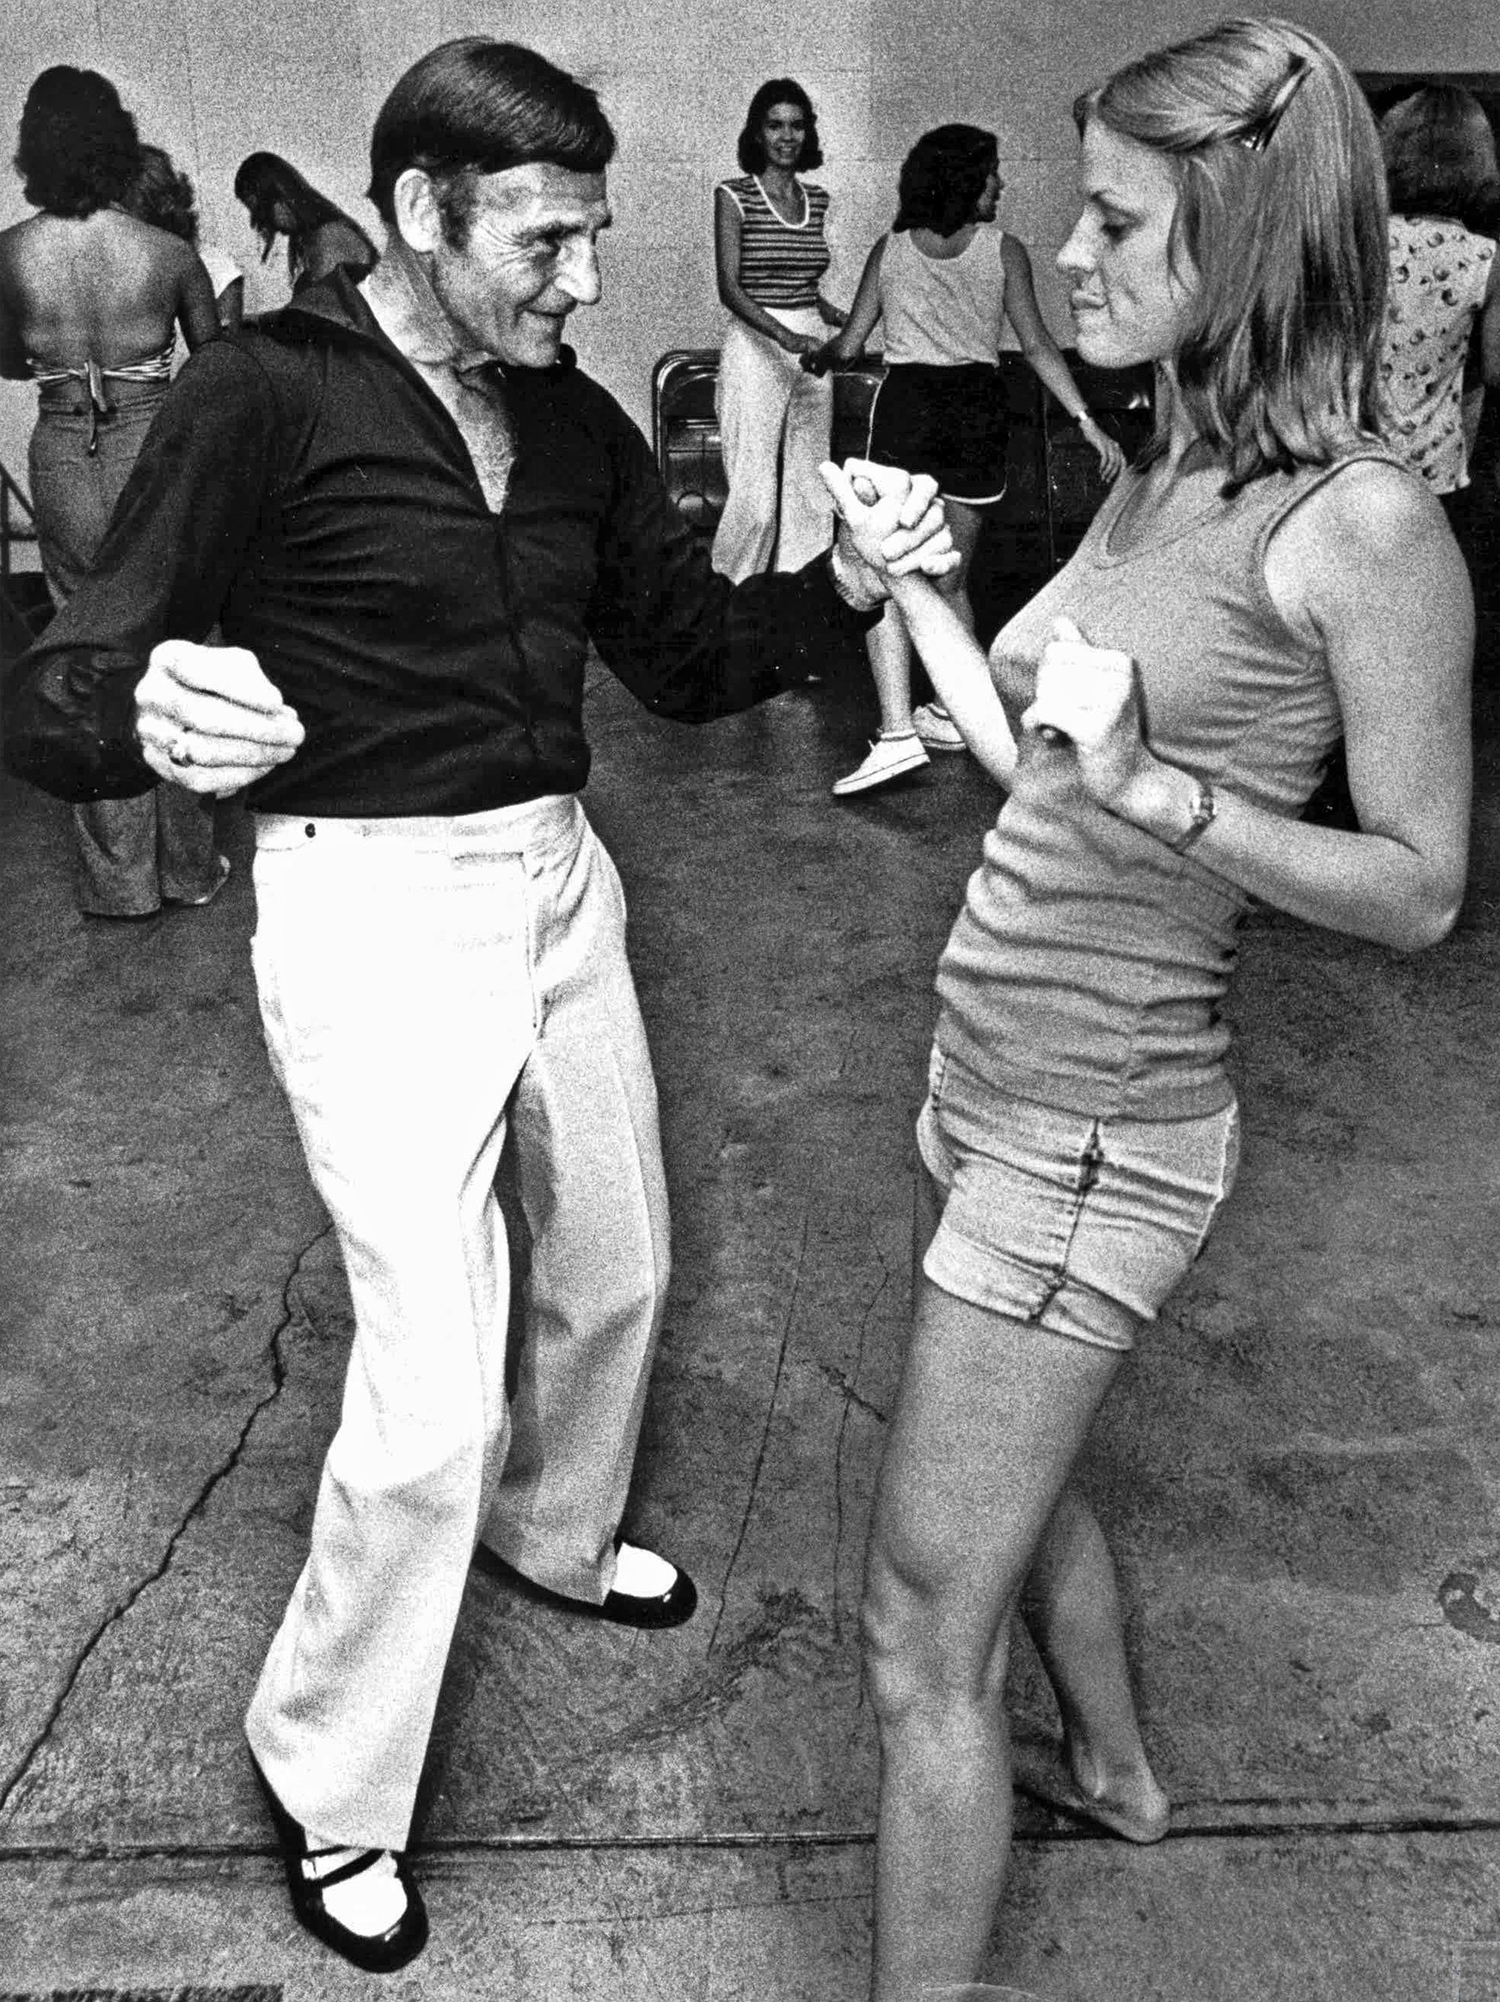 50 Random Pictures Of People Dancing In The 1960s 1970s